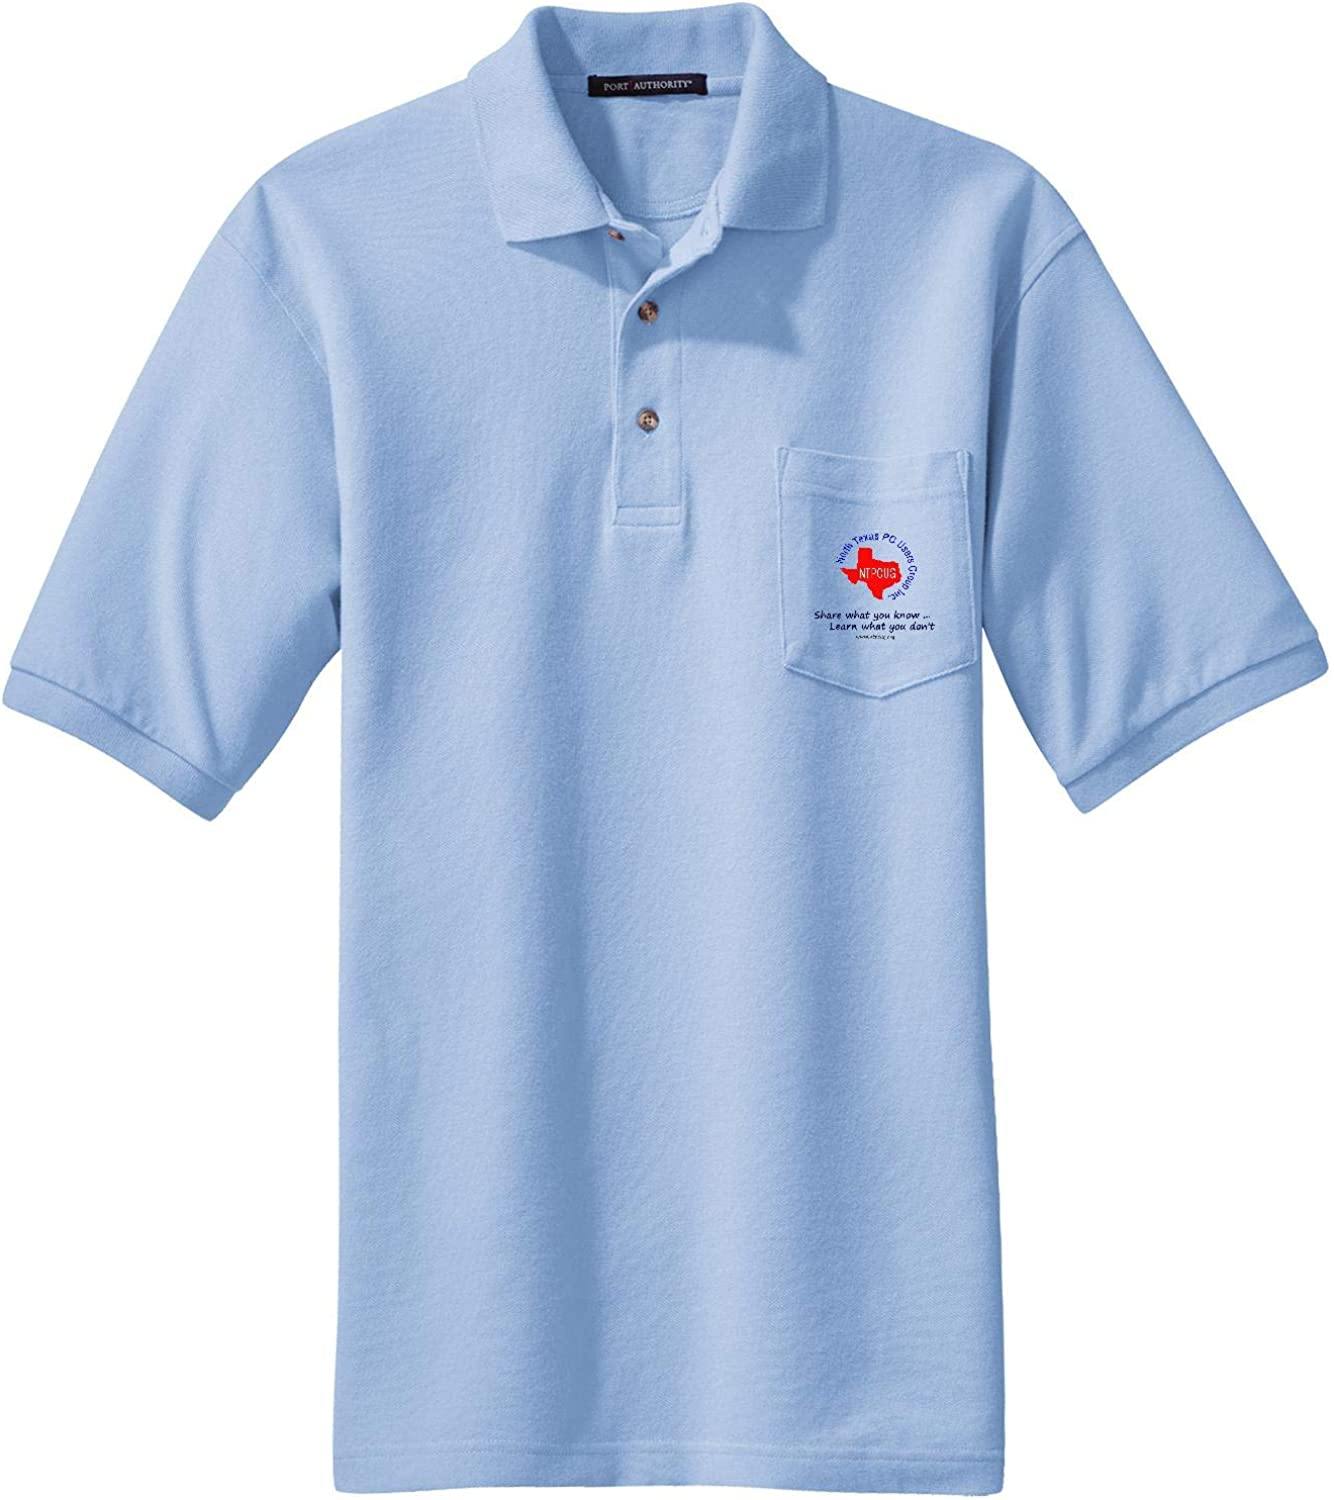 NTPCUG Polo Shirt Mens Heavyweight Cotton Pique Polo with Pocket found it YES ..